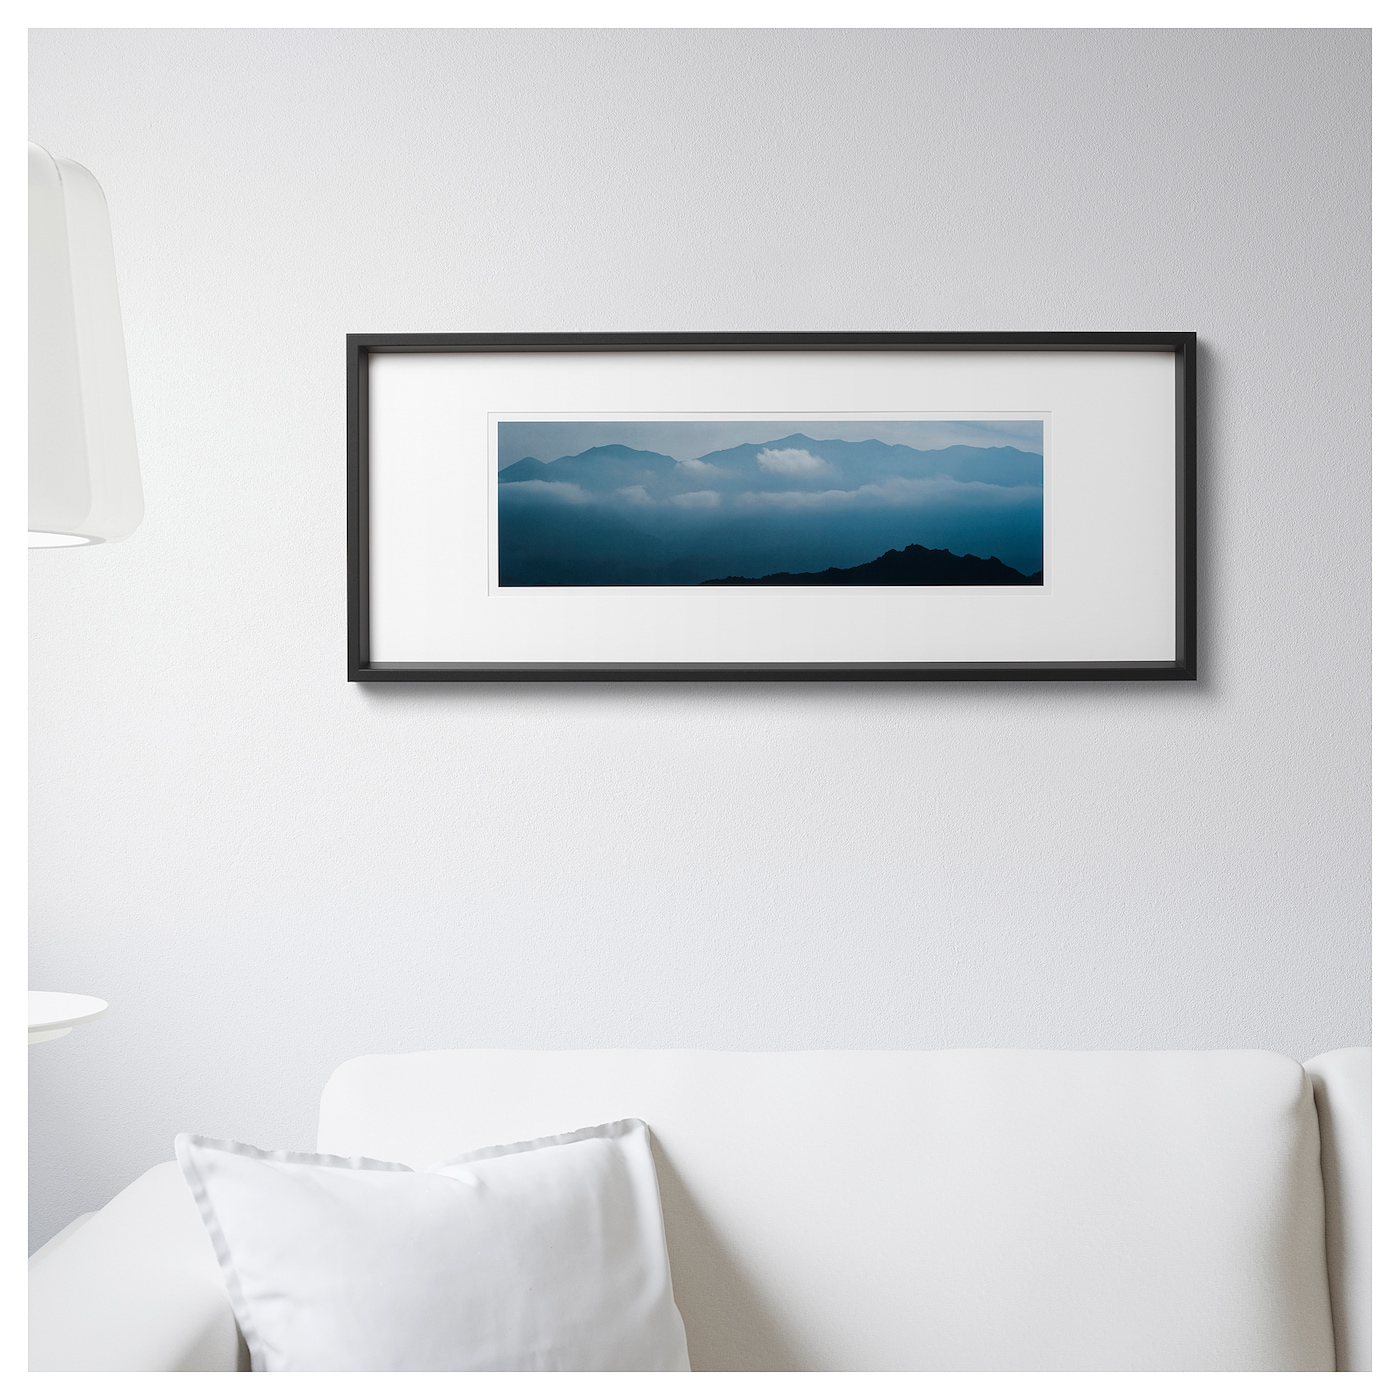 olunda tableau vue sur les montagnes 94x38 5 cm ikea. Black Bedroom Furniture Sets. Home Design Ideas